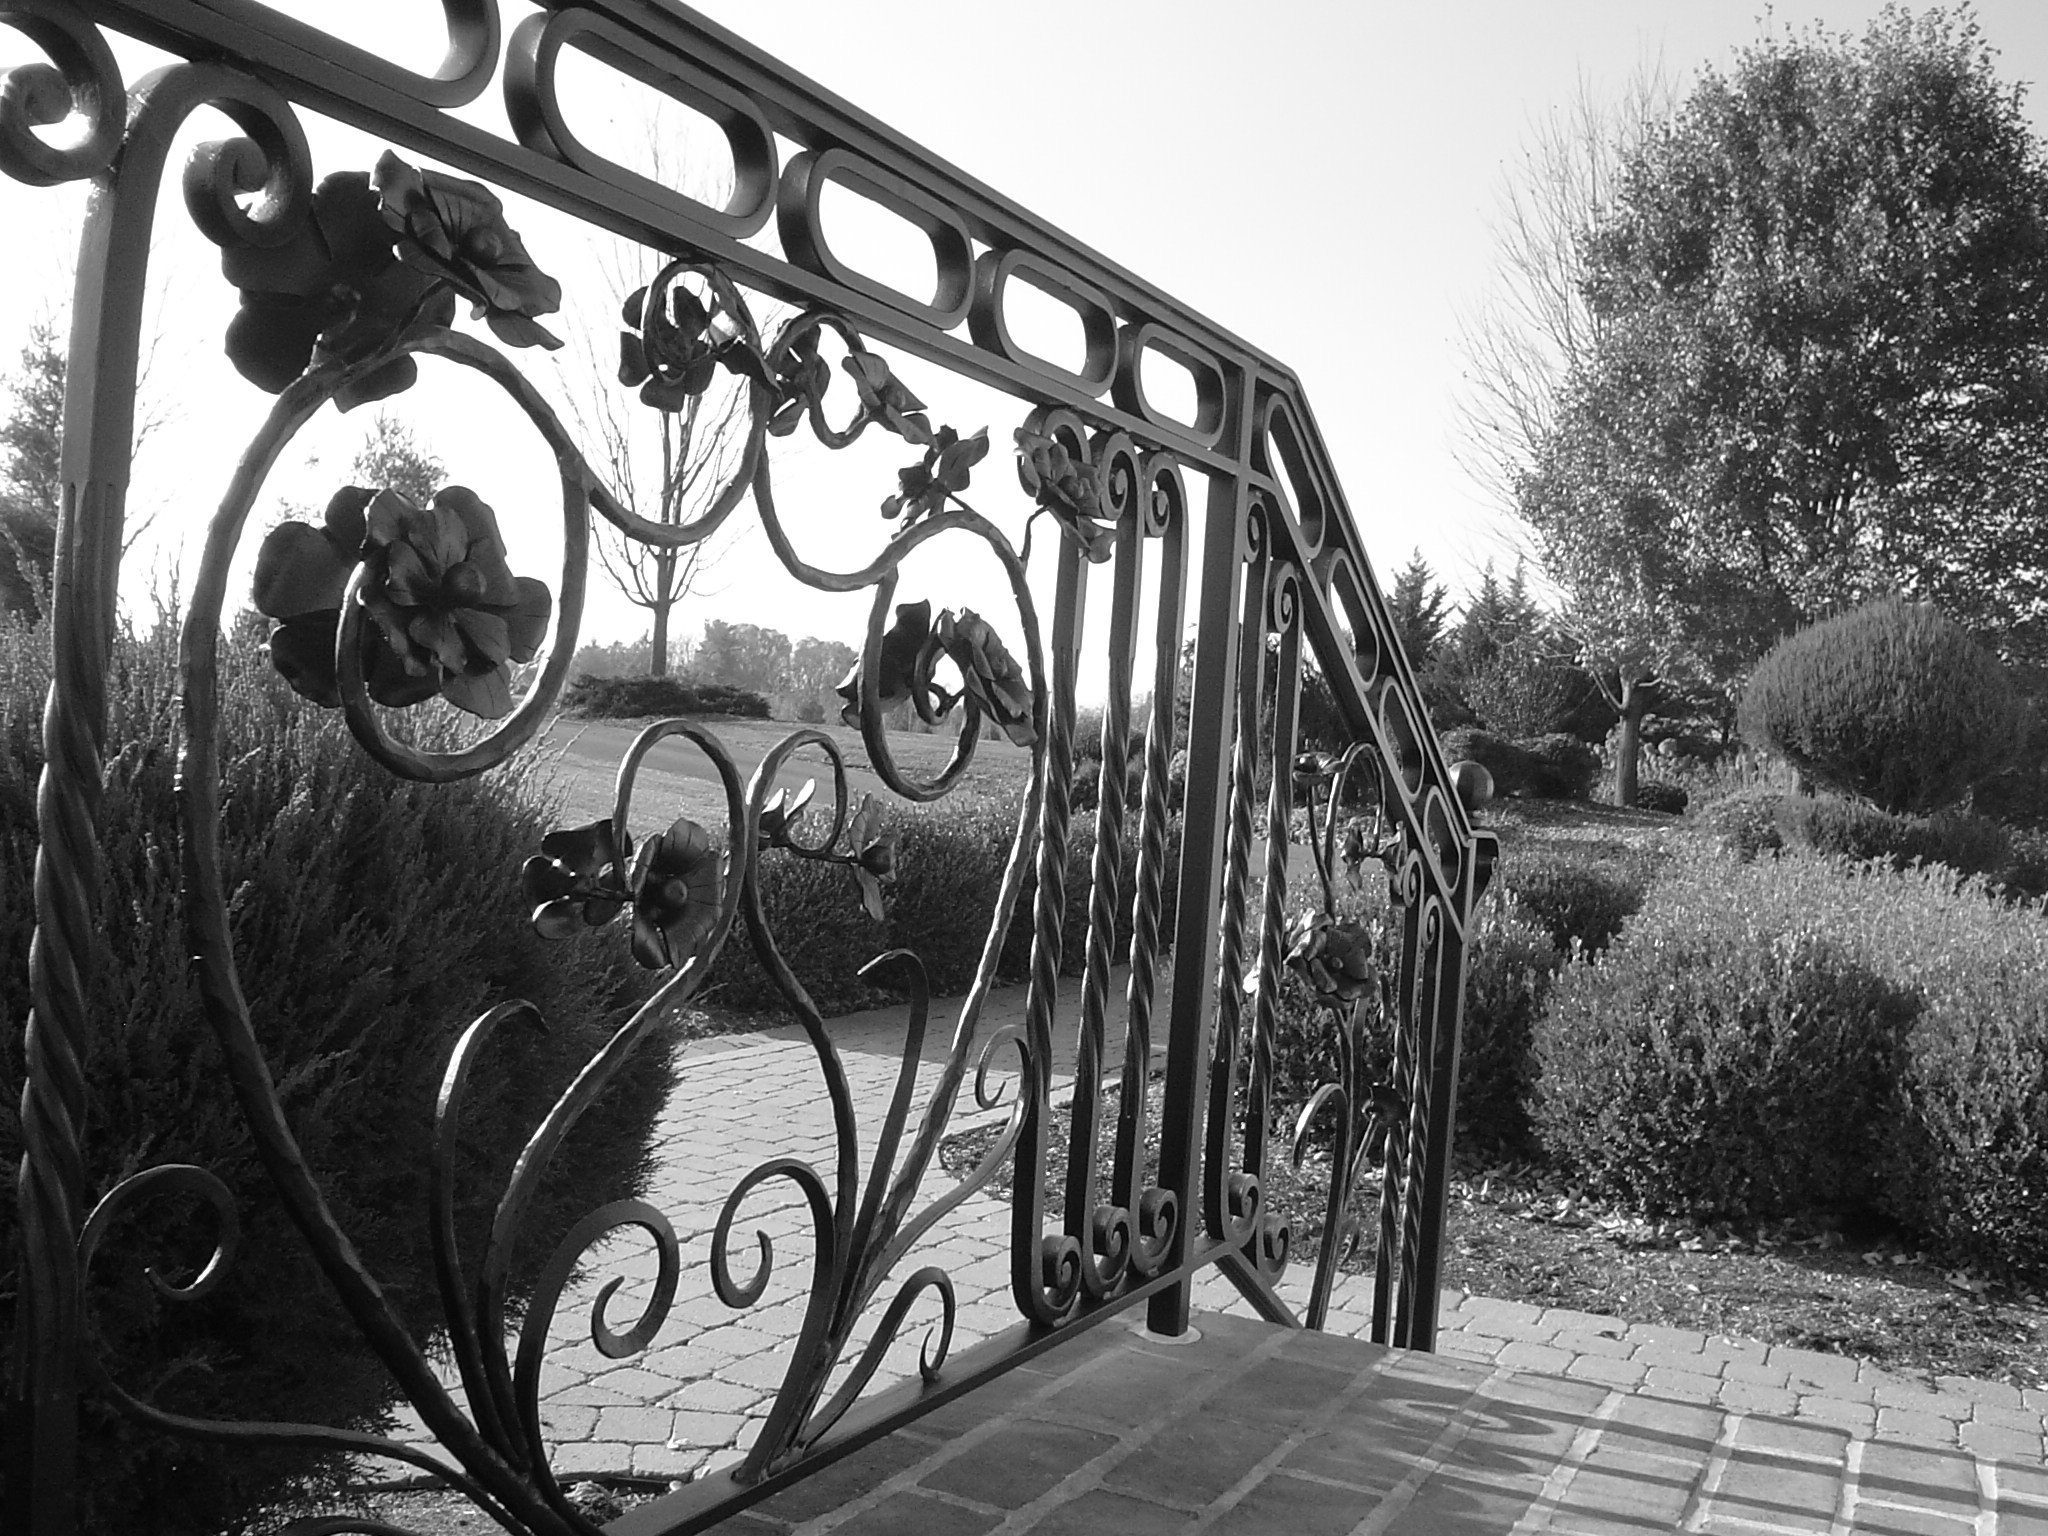 Wheatstairrail Useforbigslide Wrought Iron French Step Railing